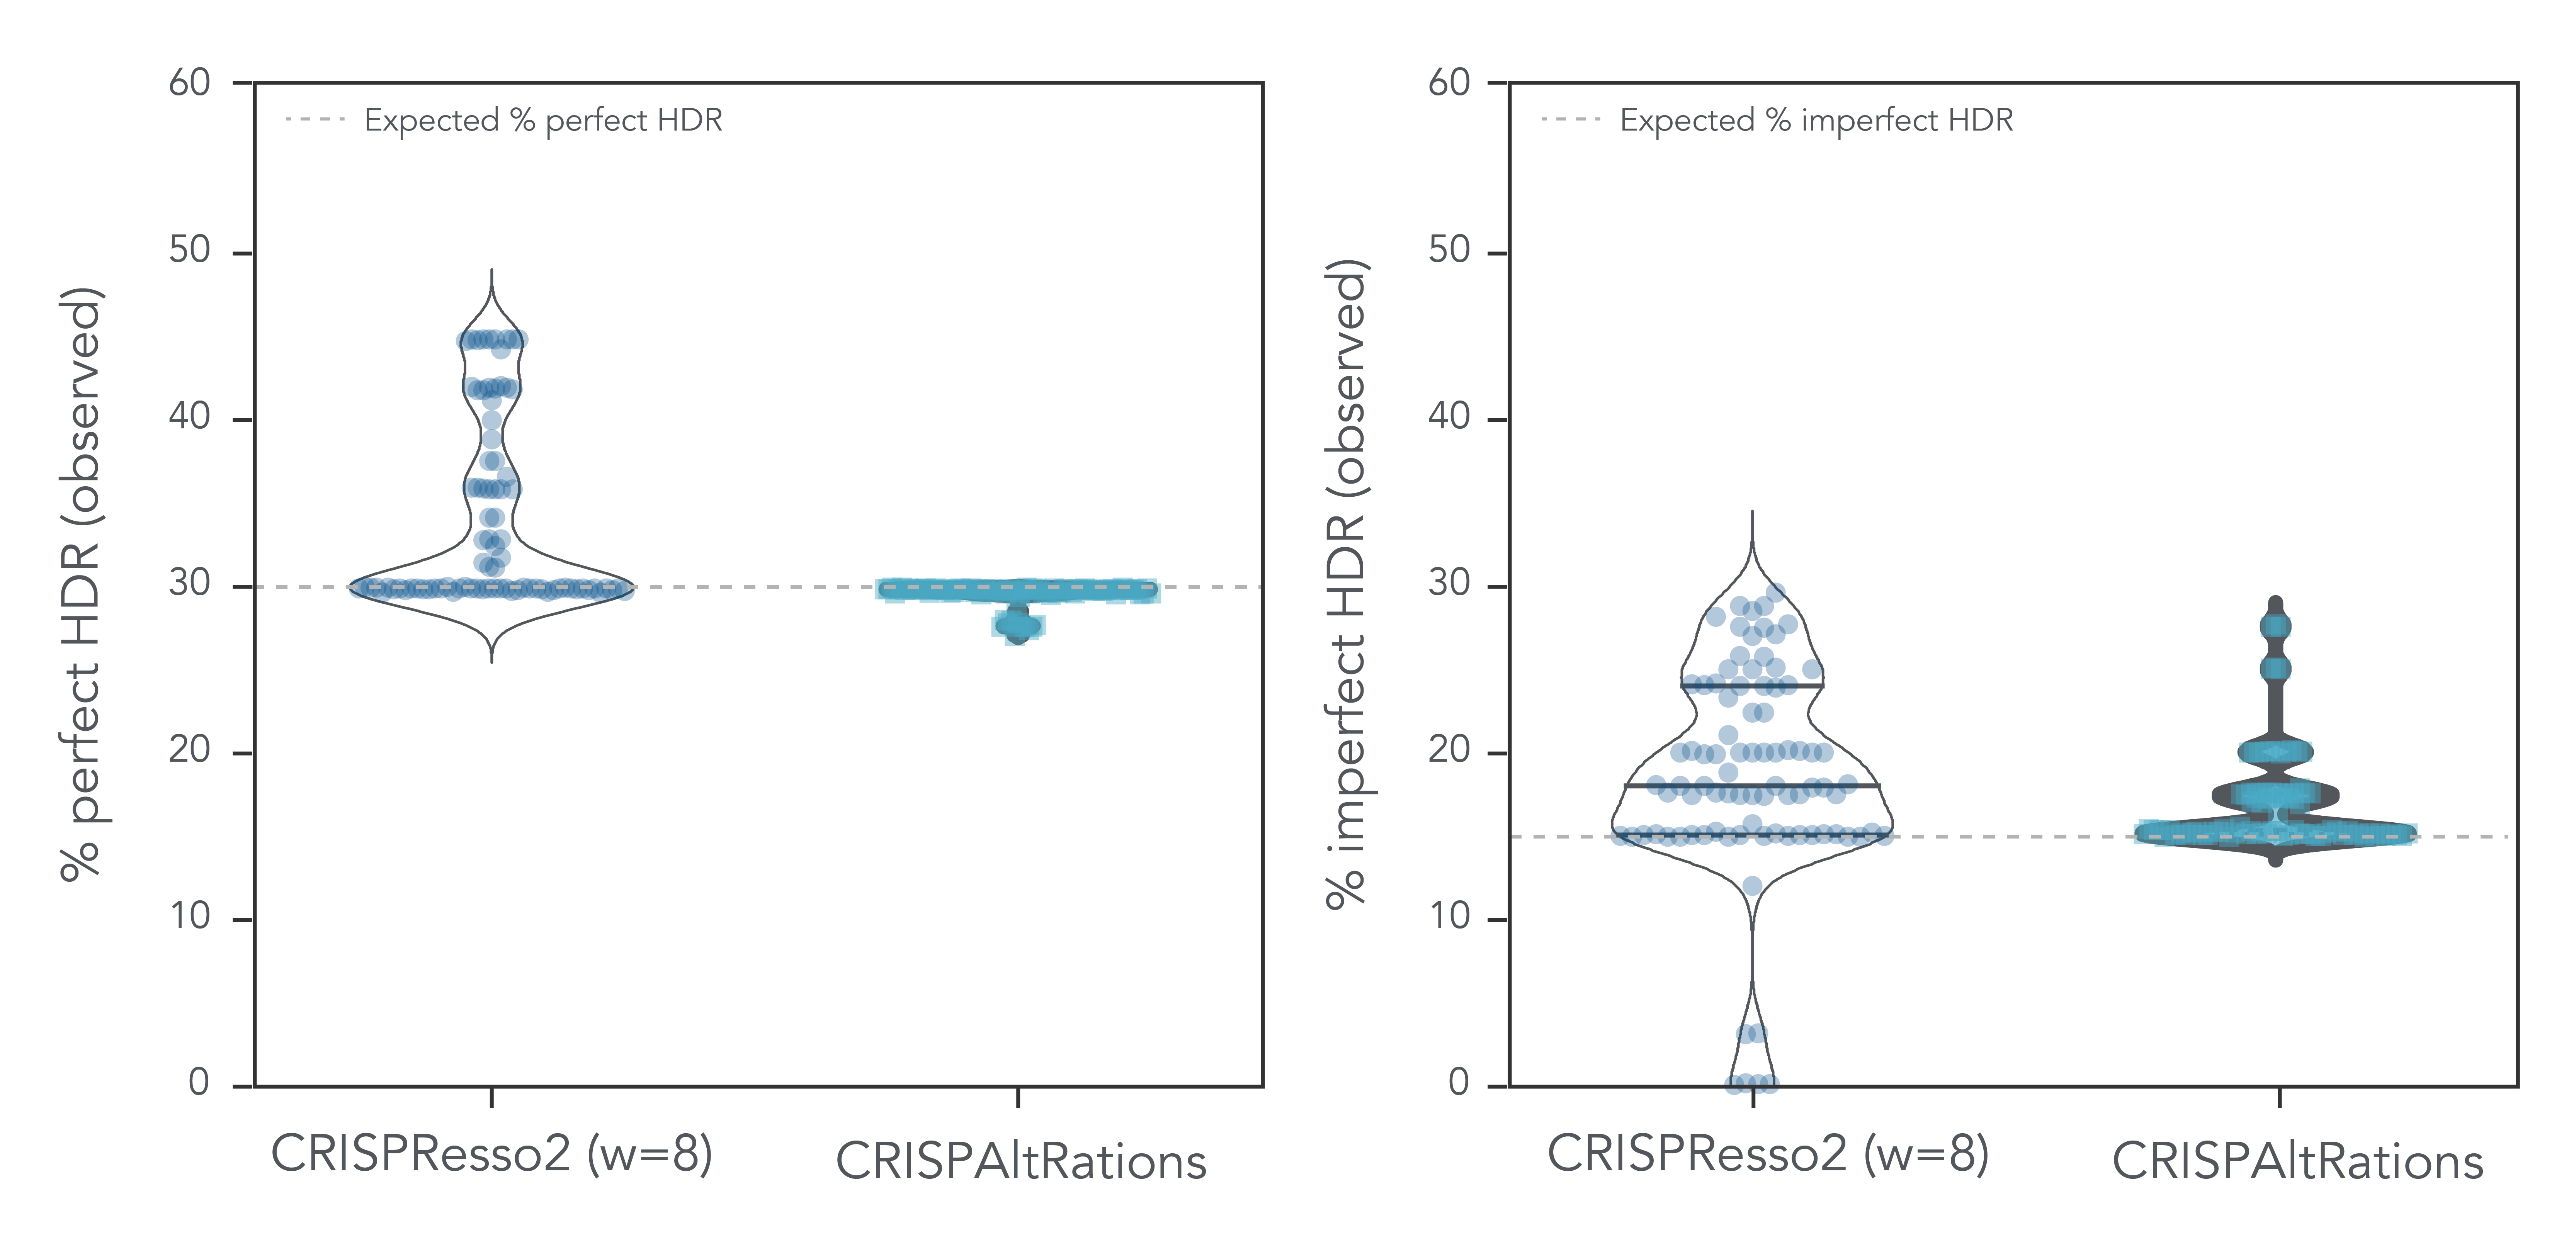 CRISPAltRations has a higher on-target rate of HDR annotation accuracy.